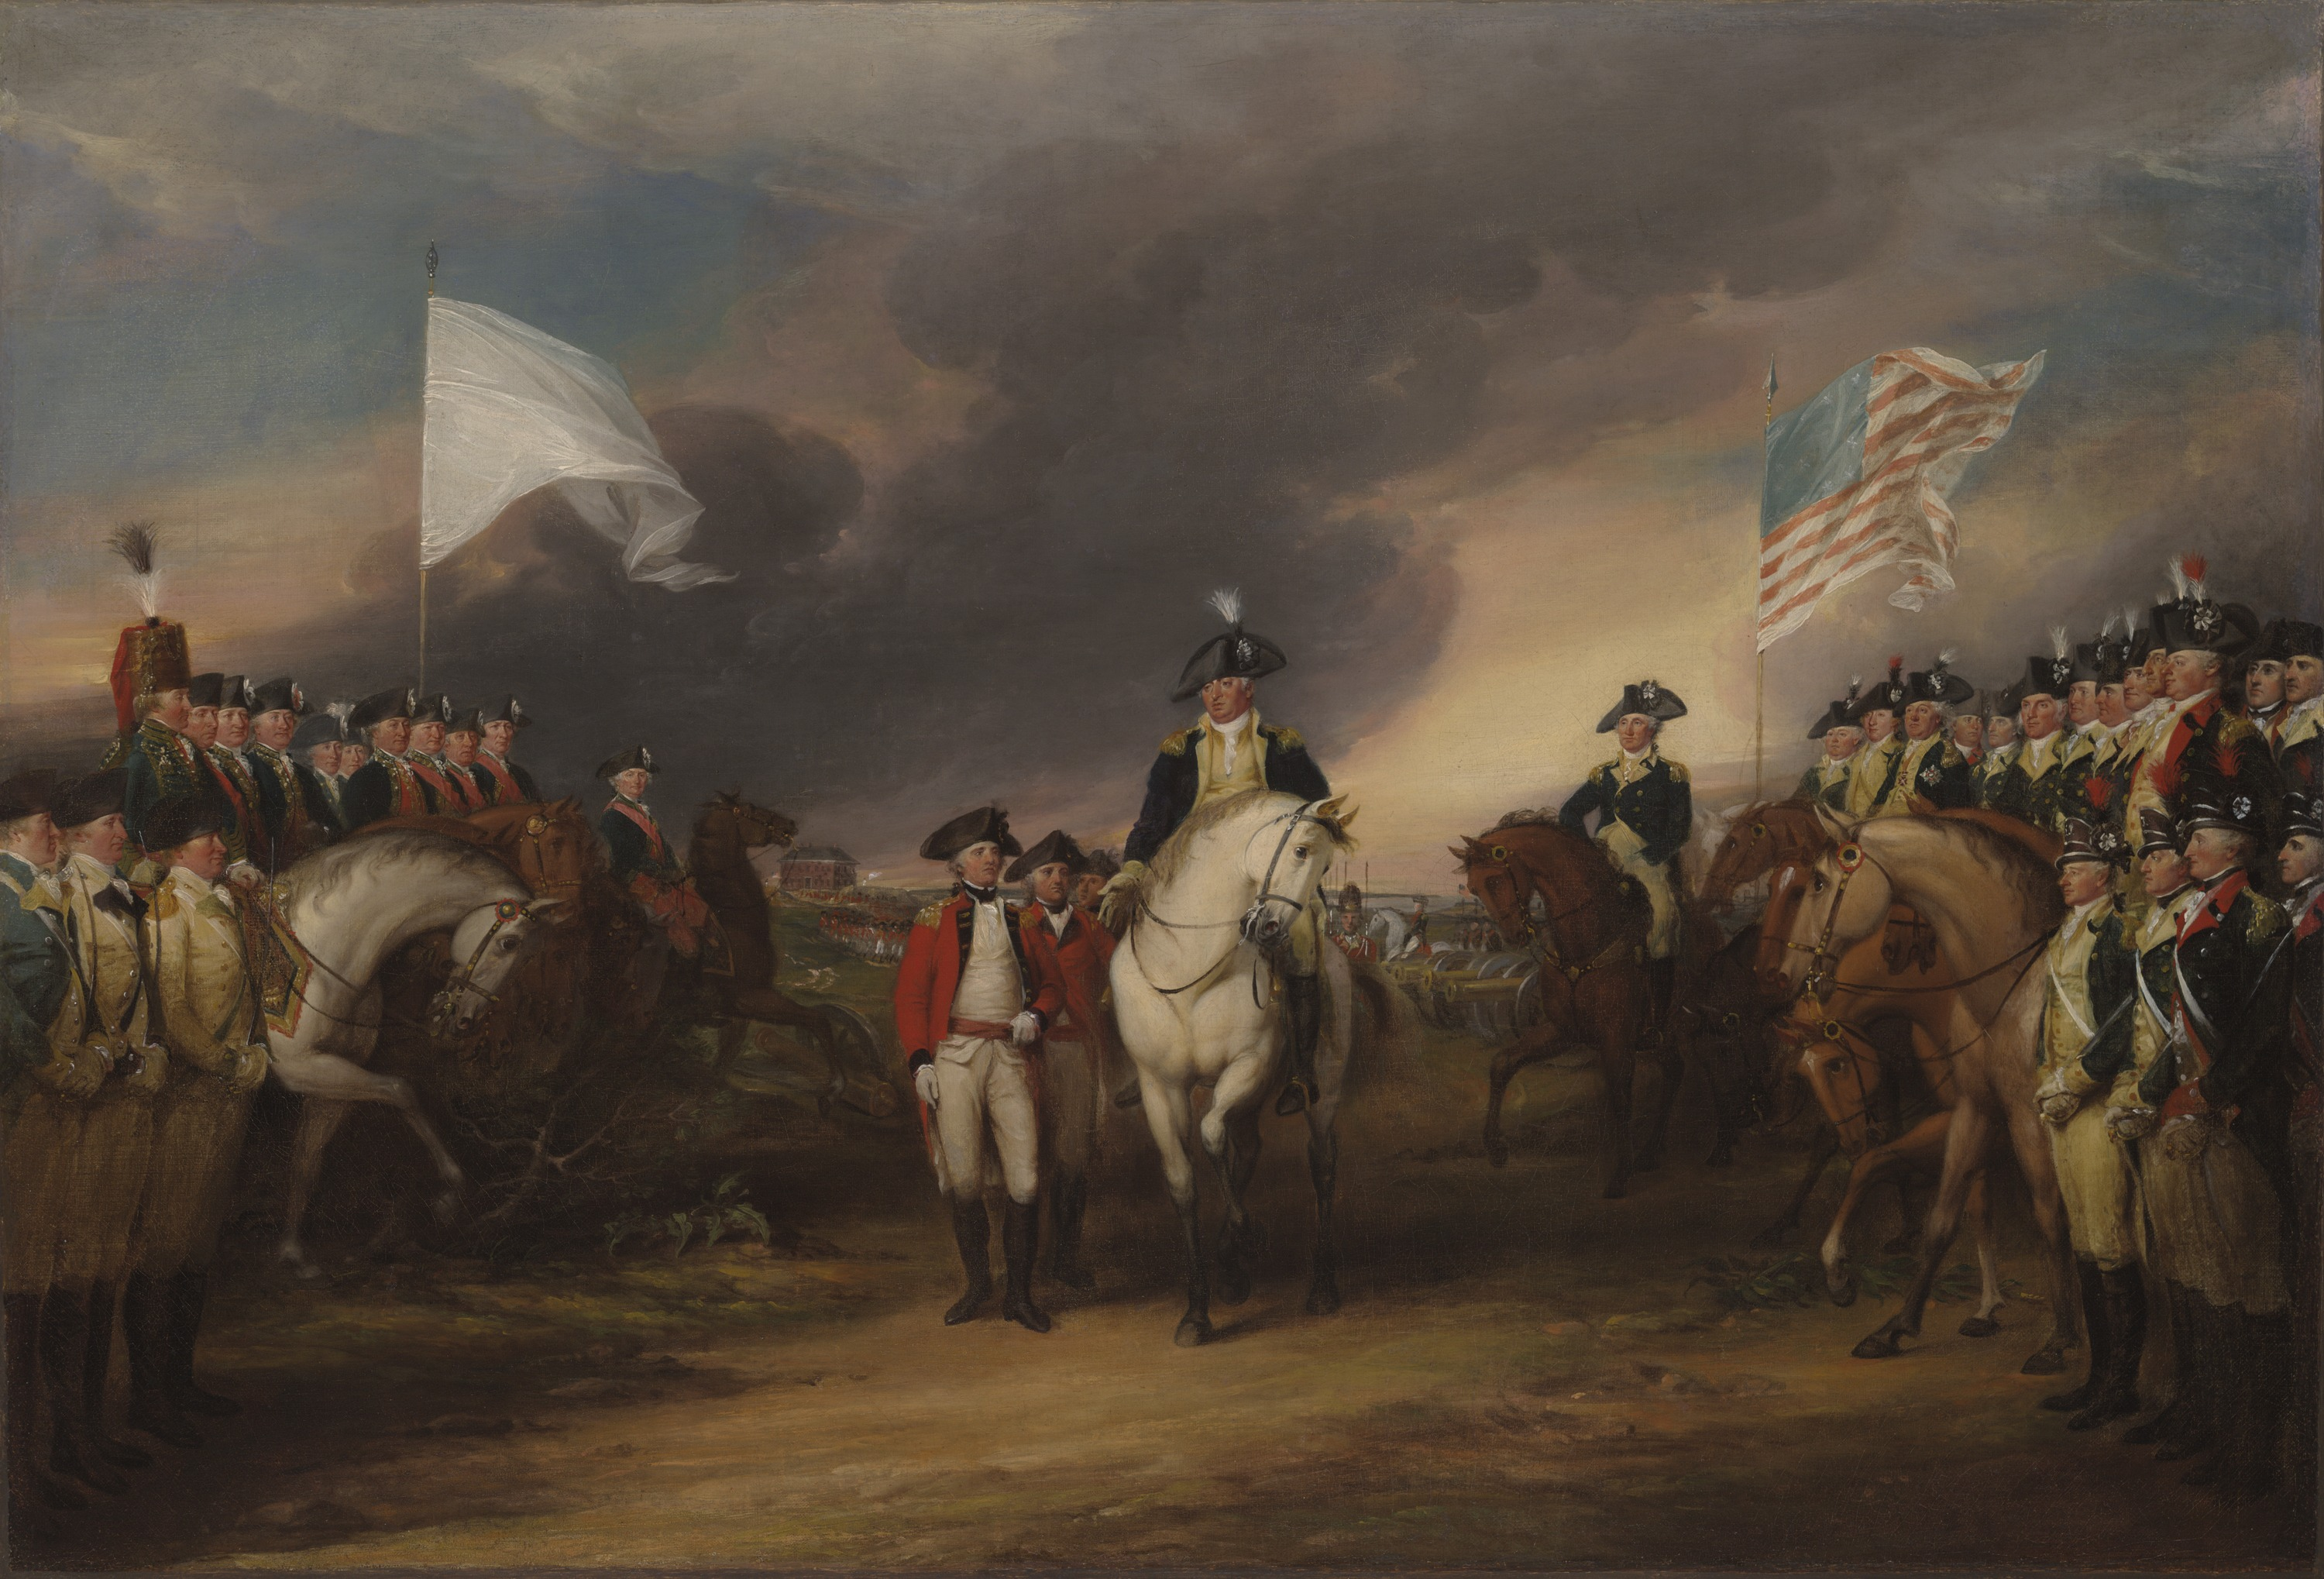 When did the white flag become associated with surrender? - HISTORY